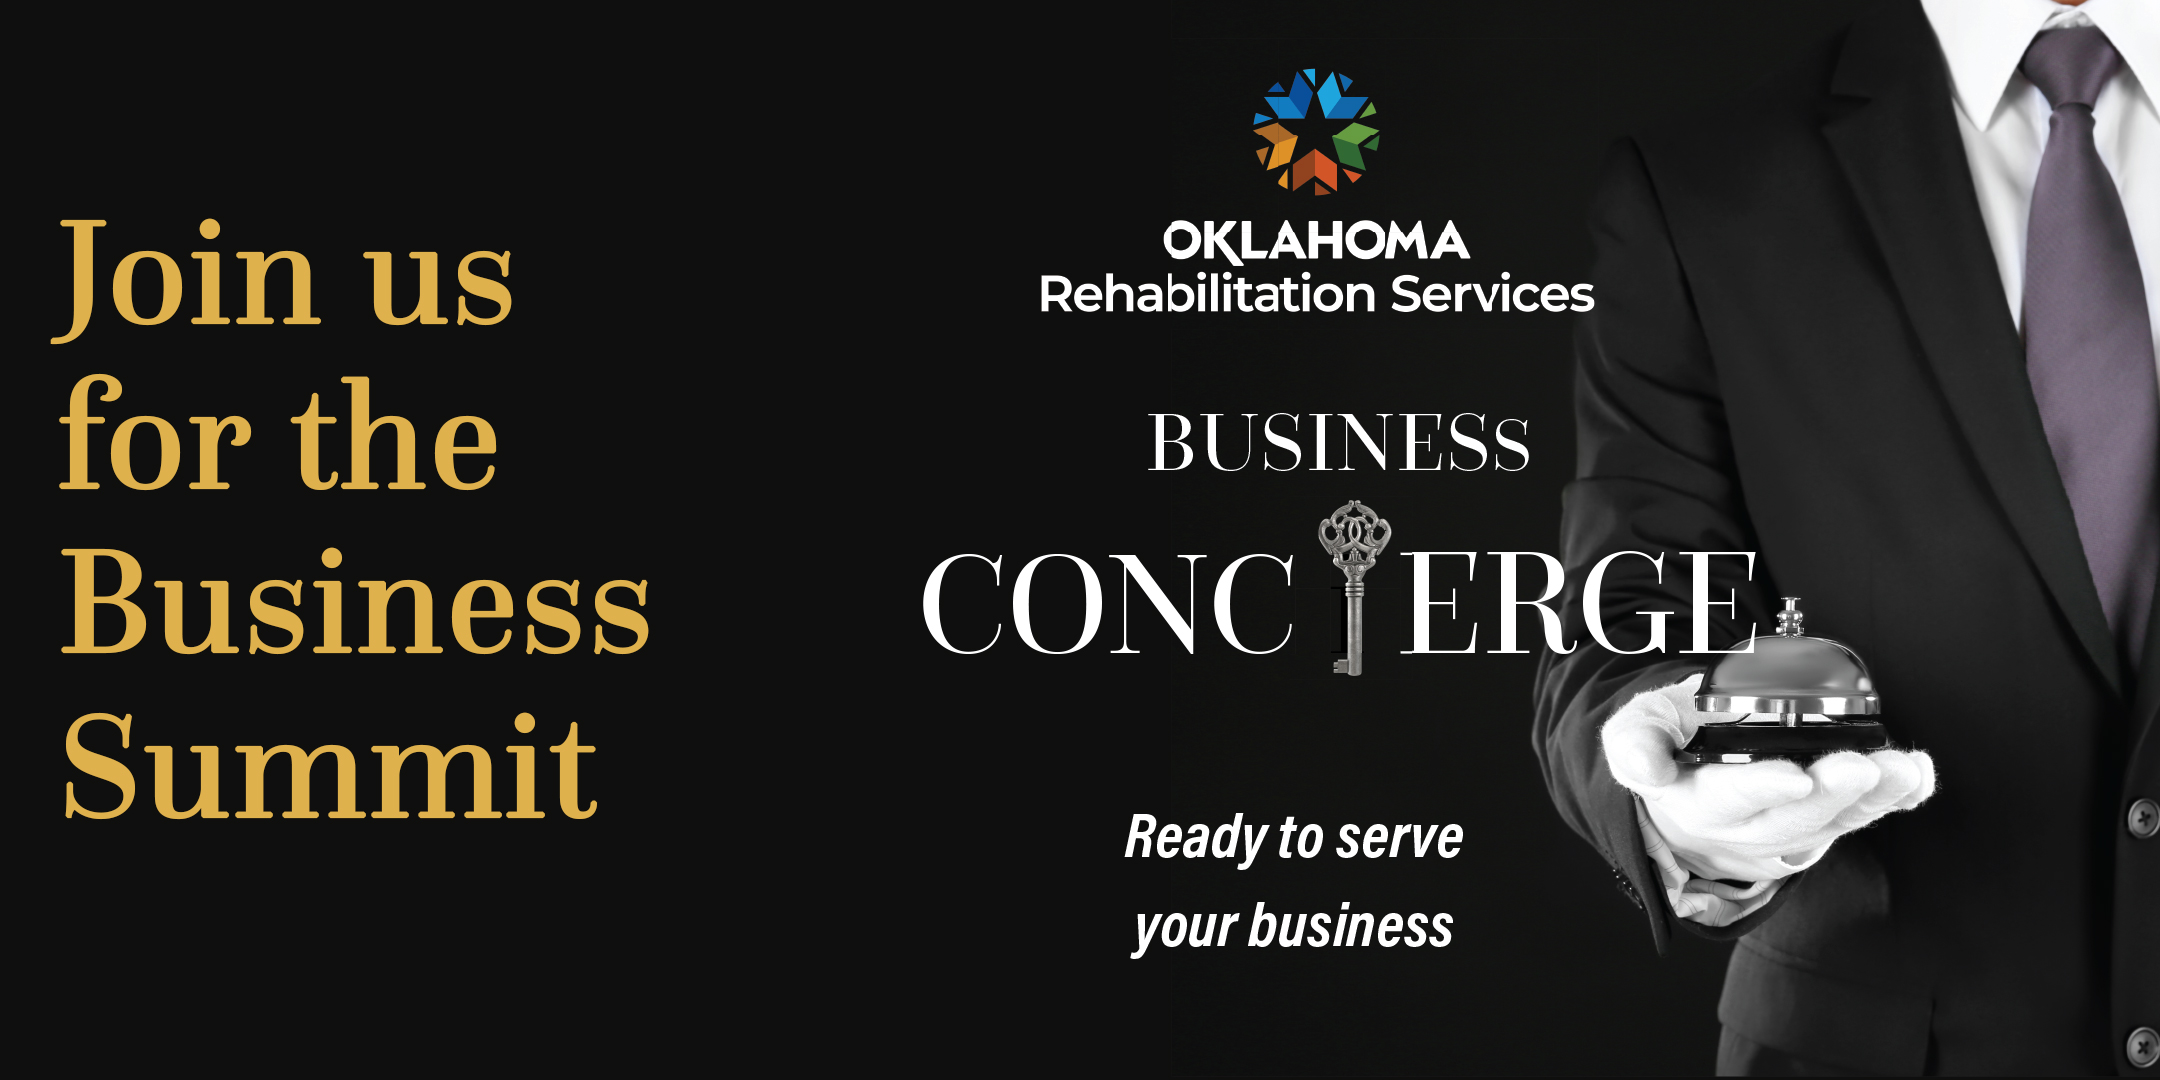 Join us for the Business Summit. Oklahoma Department of Rehabilitation Services  logo. Business Concierge, Ready to serve your business. Image of a man in a suit and white gloves holding a service bell.